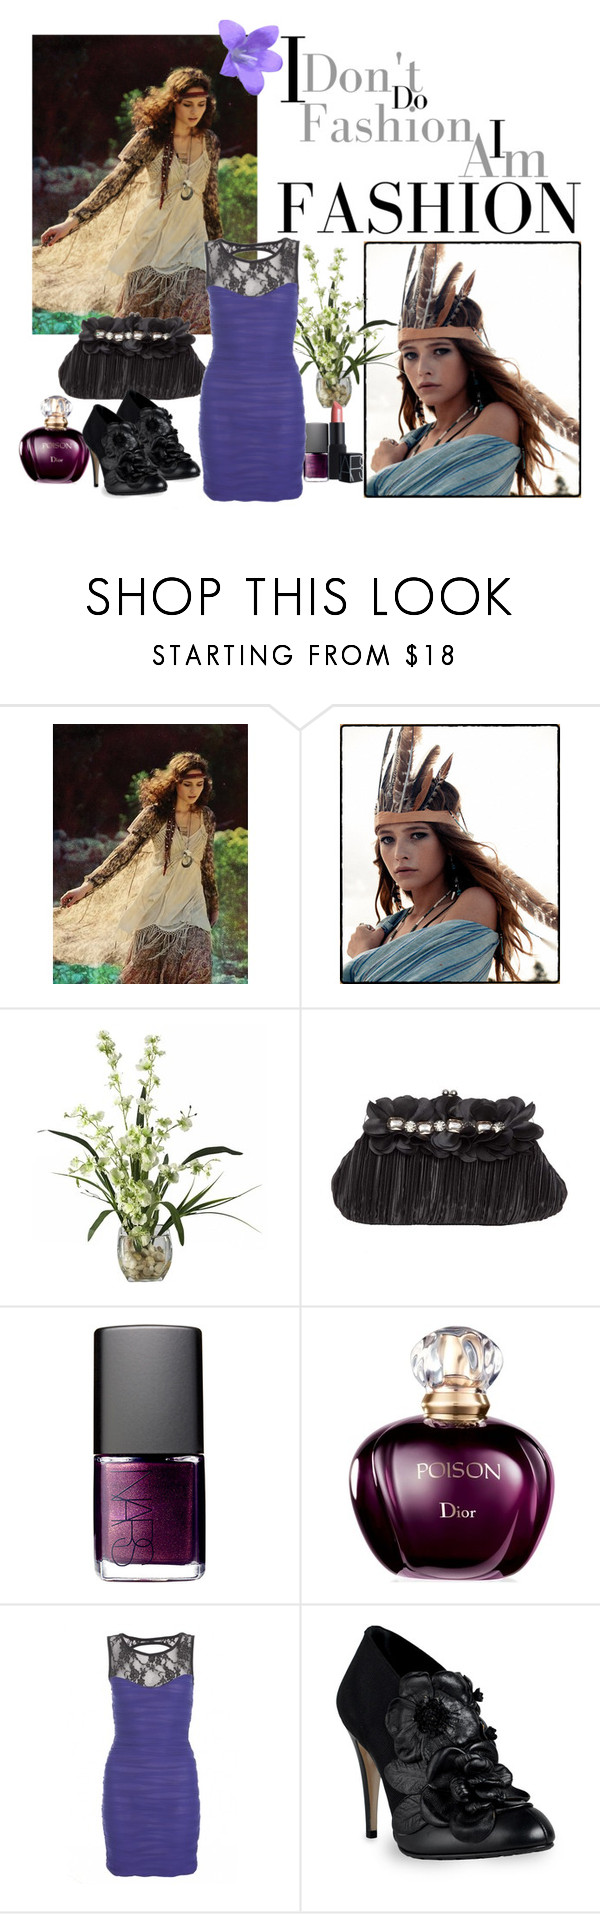 """""""I don't do Fashion, I AM Fashion."""" by im-a-daydreamer ❤ liked on Polyvore featuring Free People, Spell, NARS Cosmetics, Christian Dior and Valentino"""